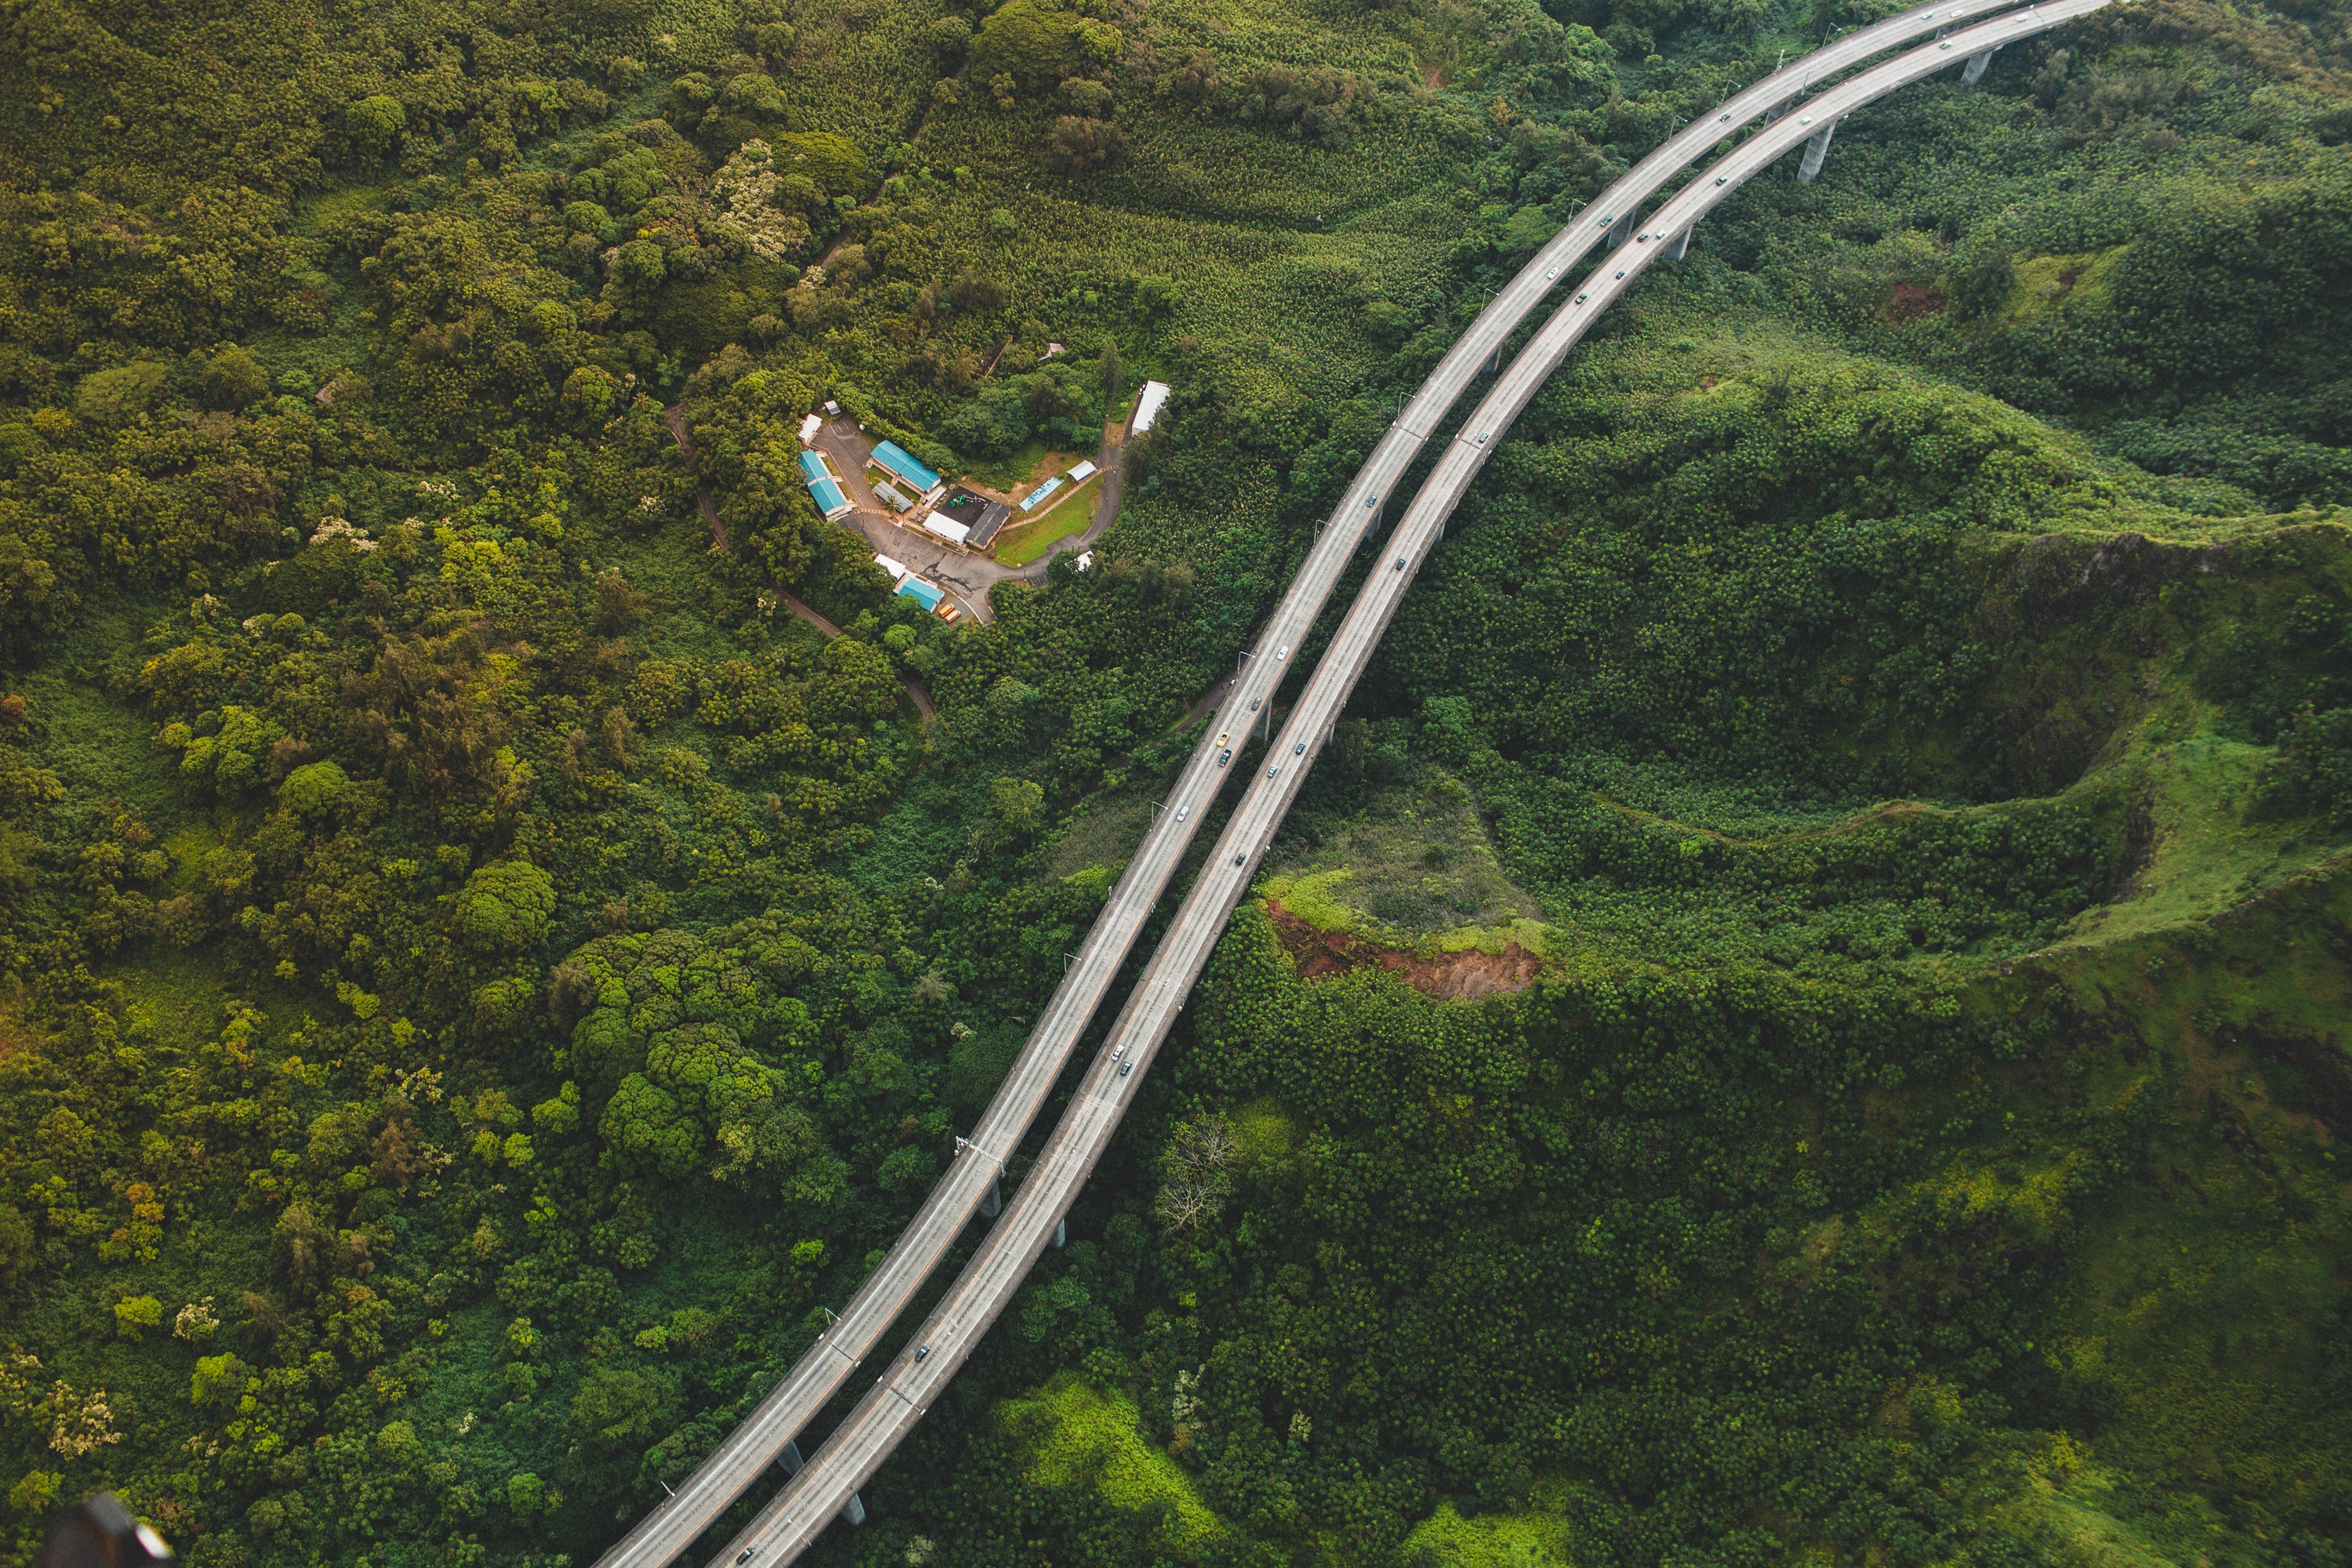 A drone shot of a two-lane road on forested hills